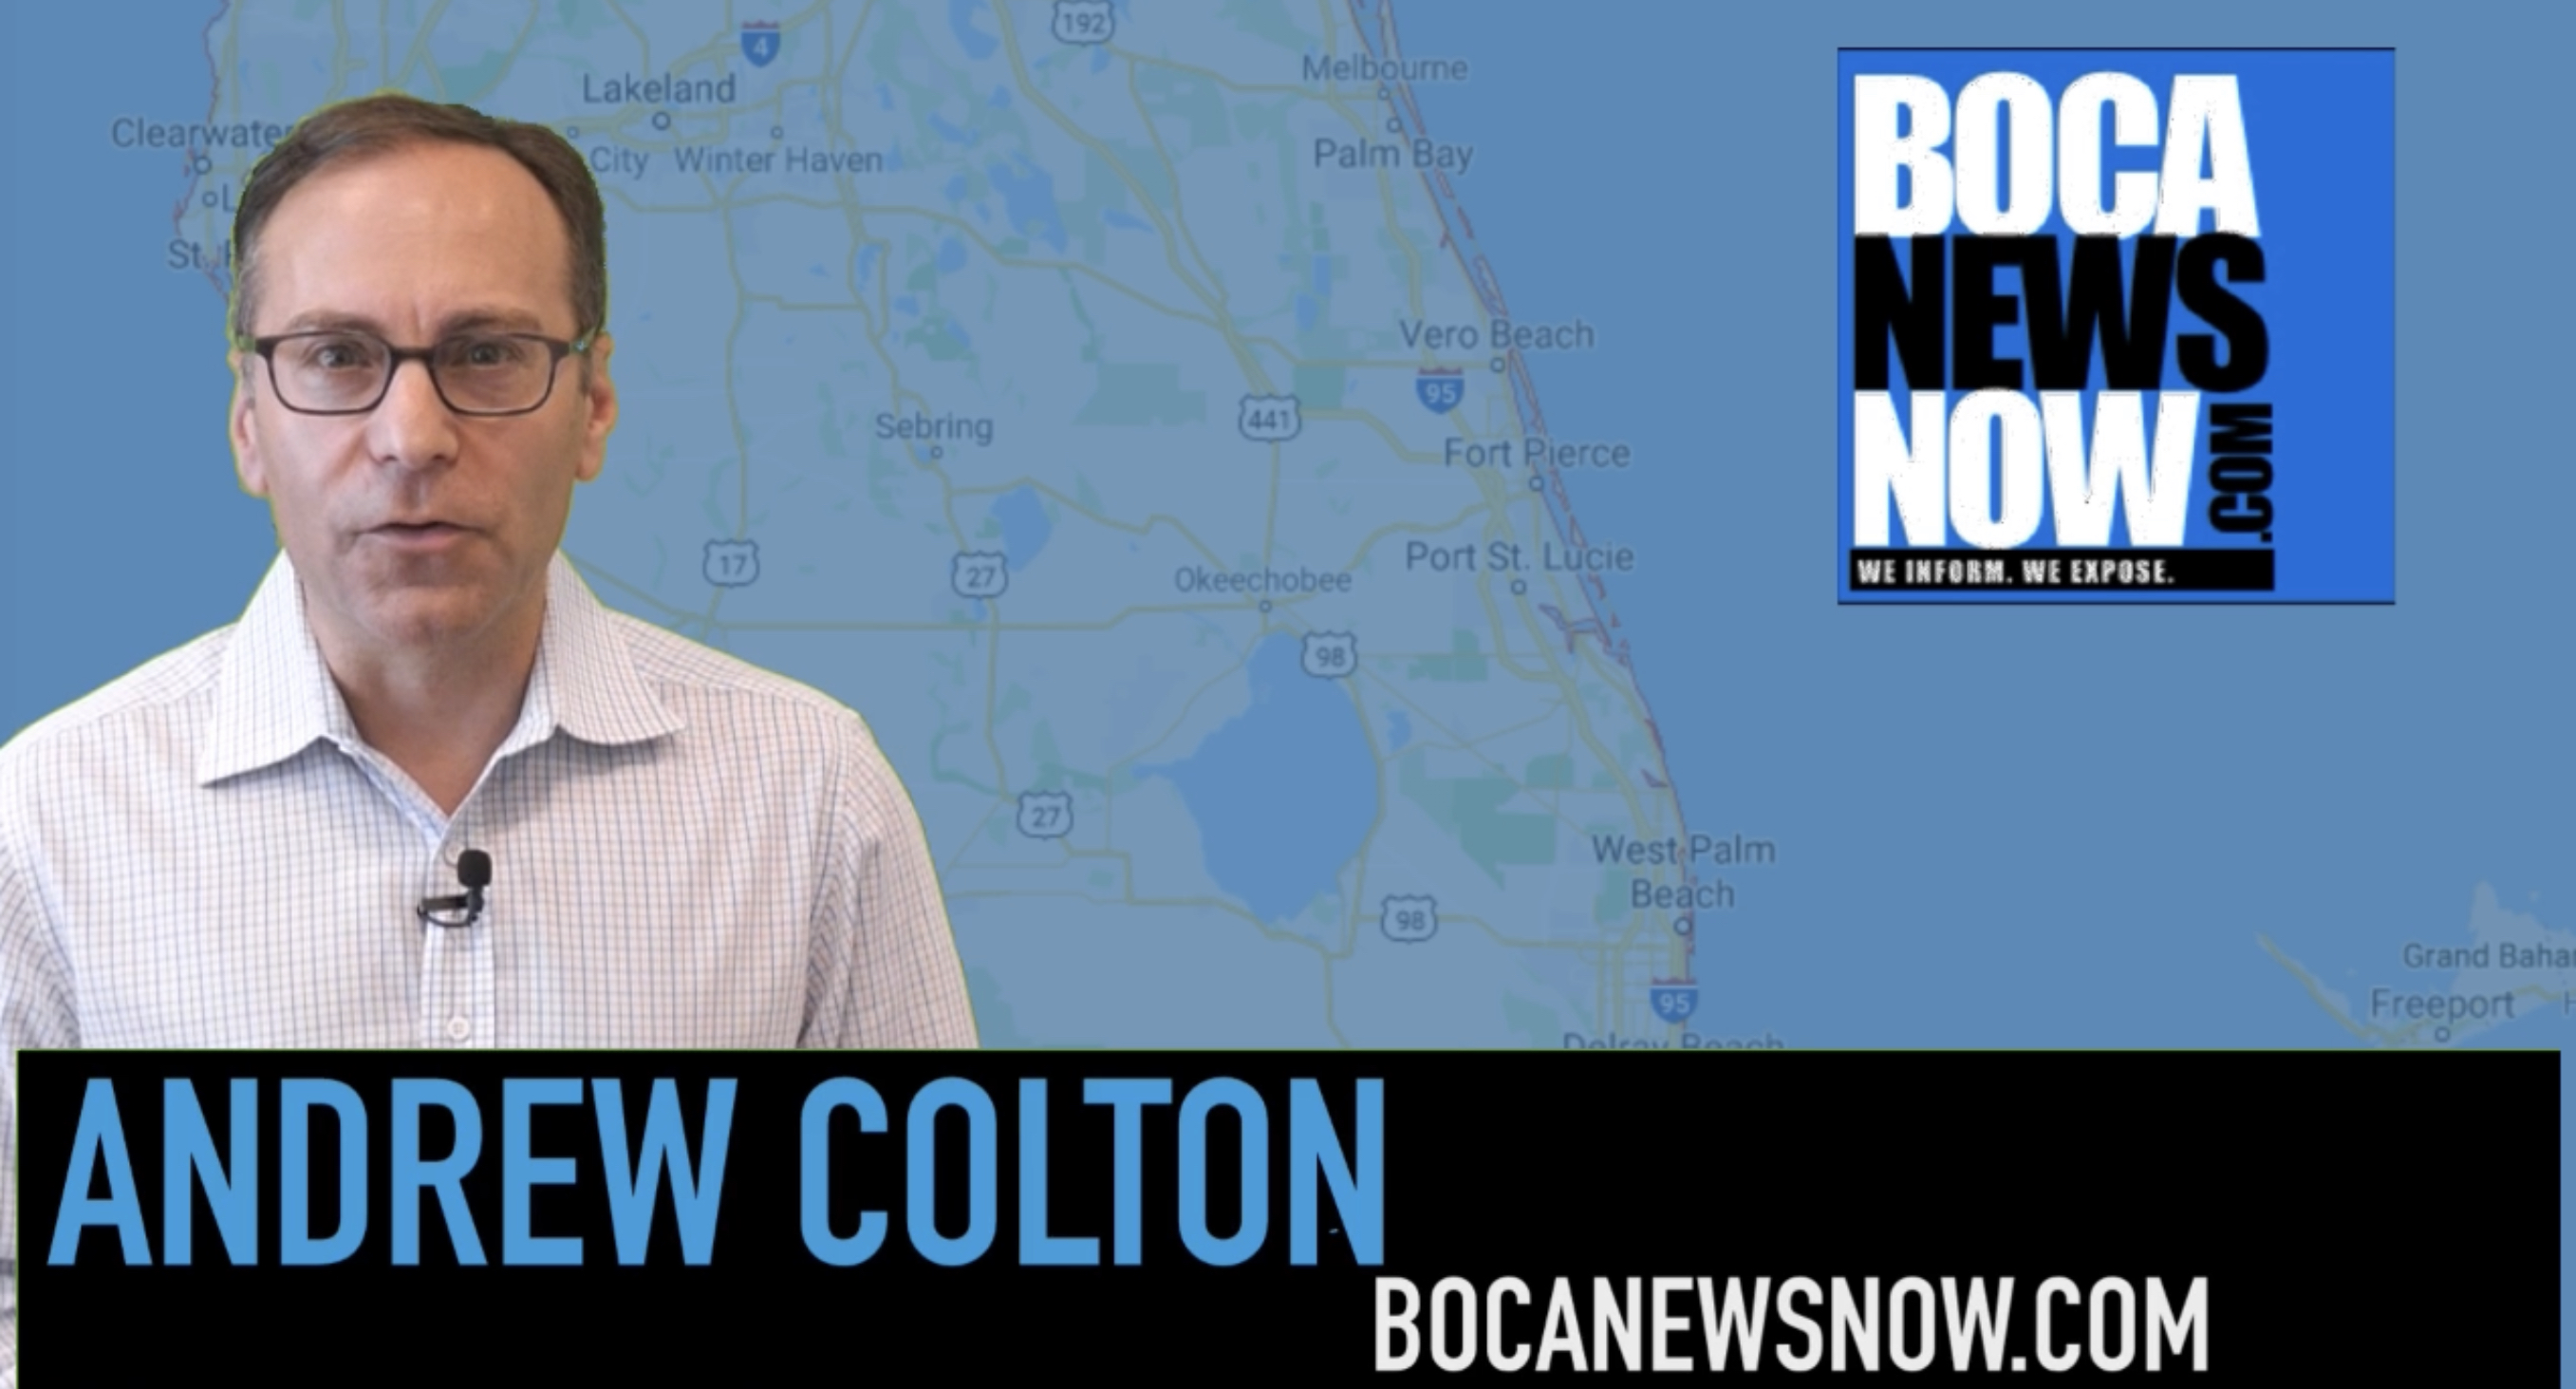 boca news now tv